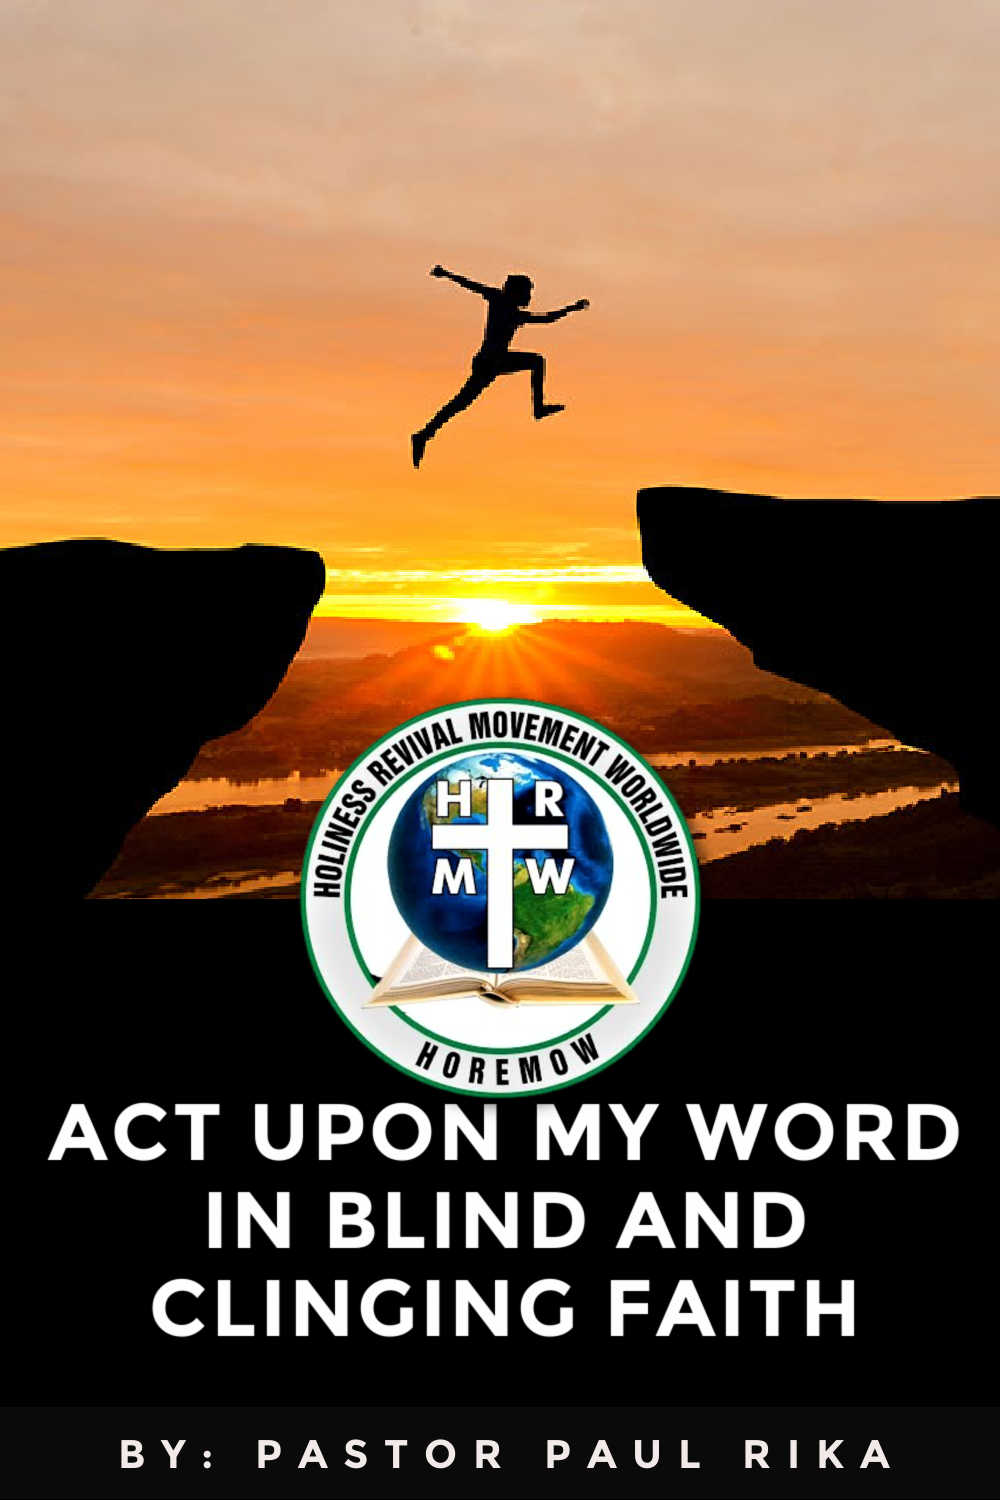 act on the word of God in blind and clinging faith